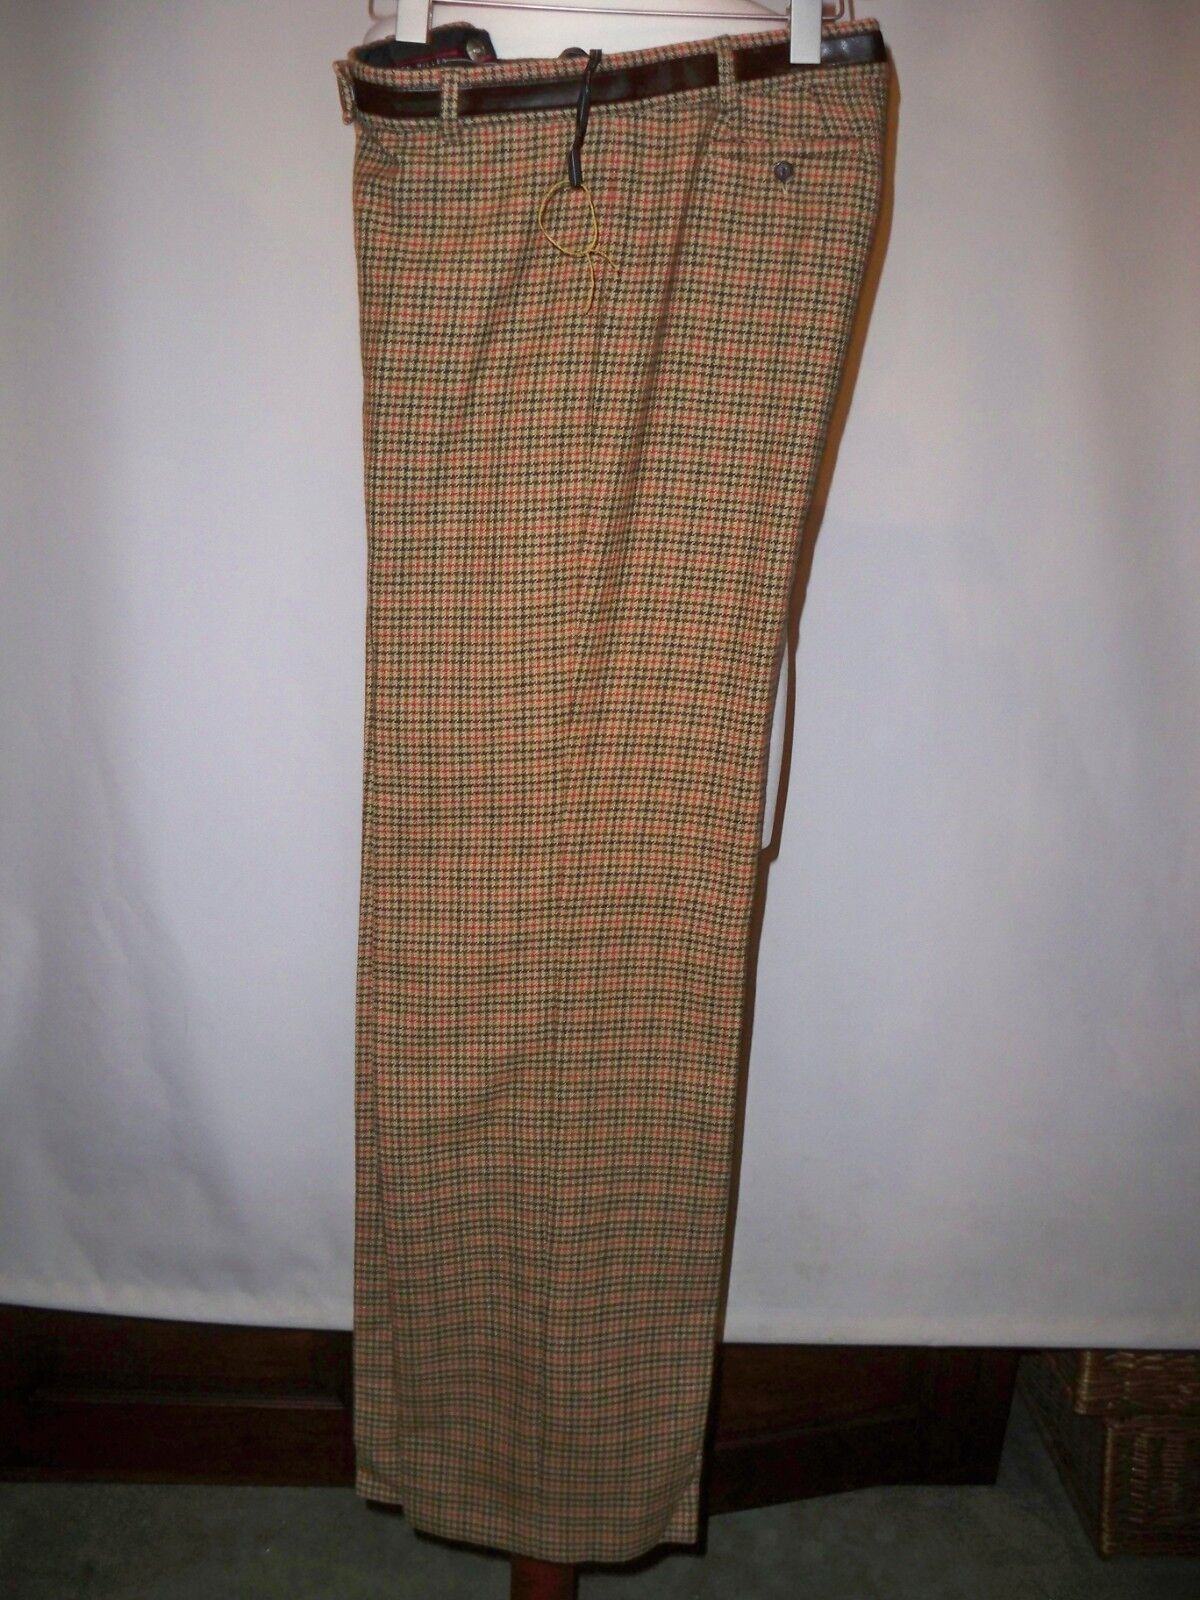 KAREN MILLEN  WOOL & CASHMERE  TWEED  WIDE LEG  TROUSERS  RRP